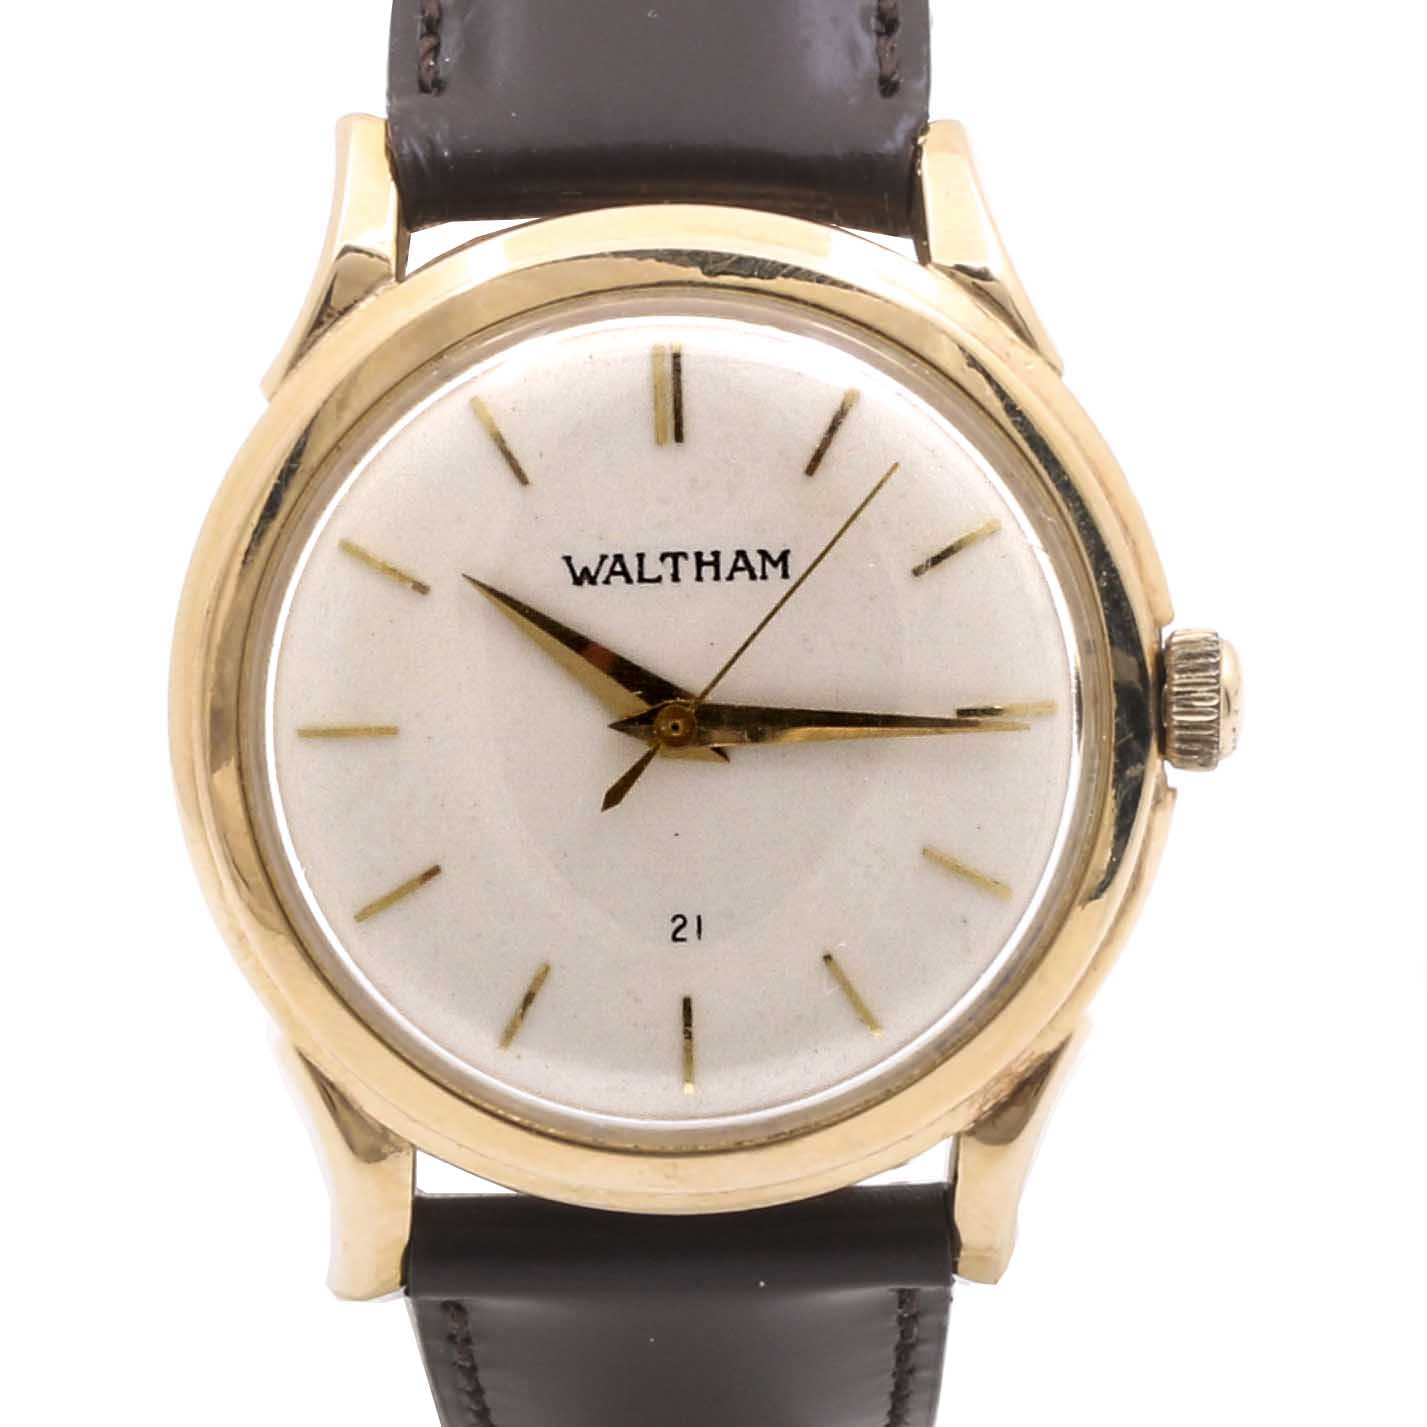 Waltham 14K Yellow Gold Wristwatch with Leather Strap